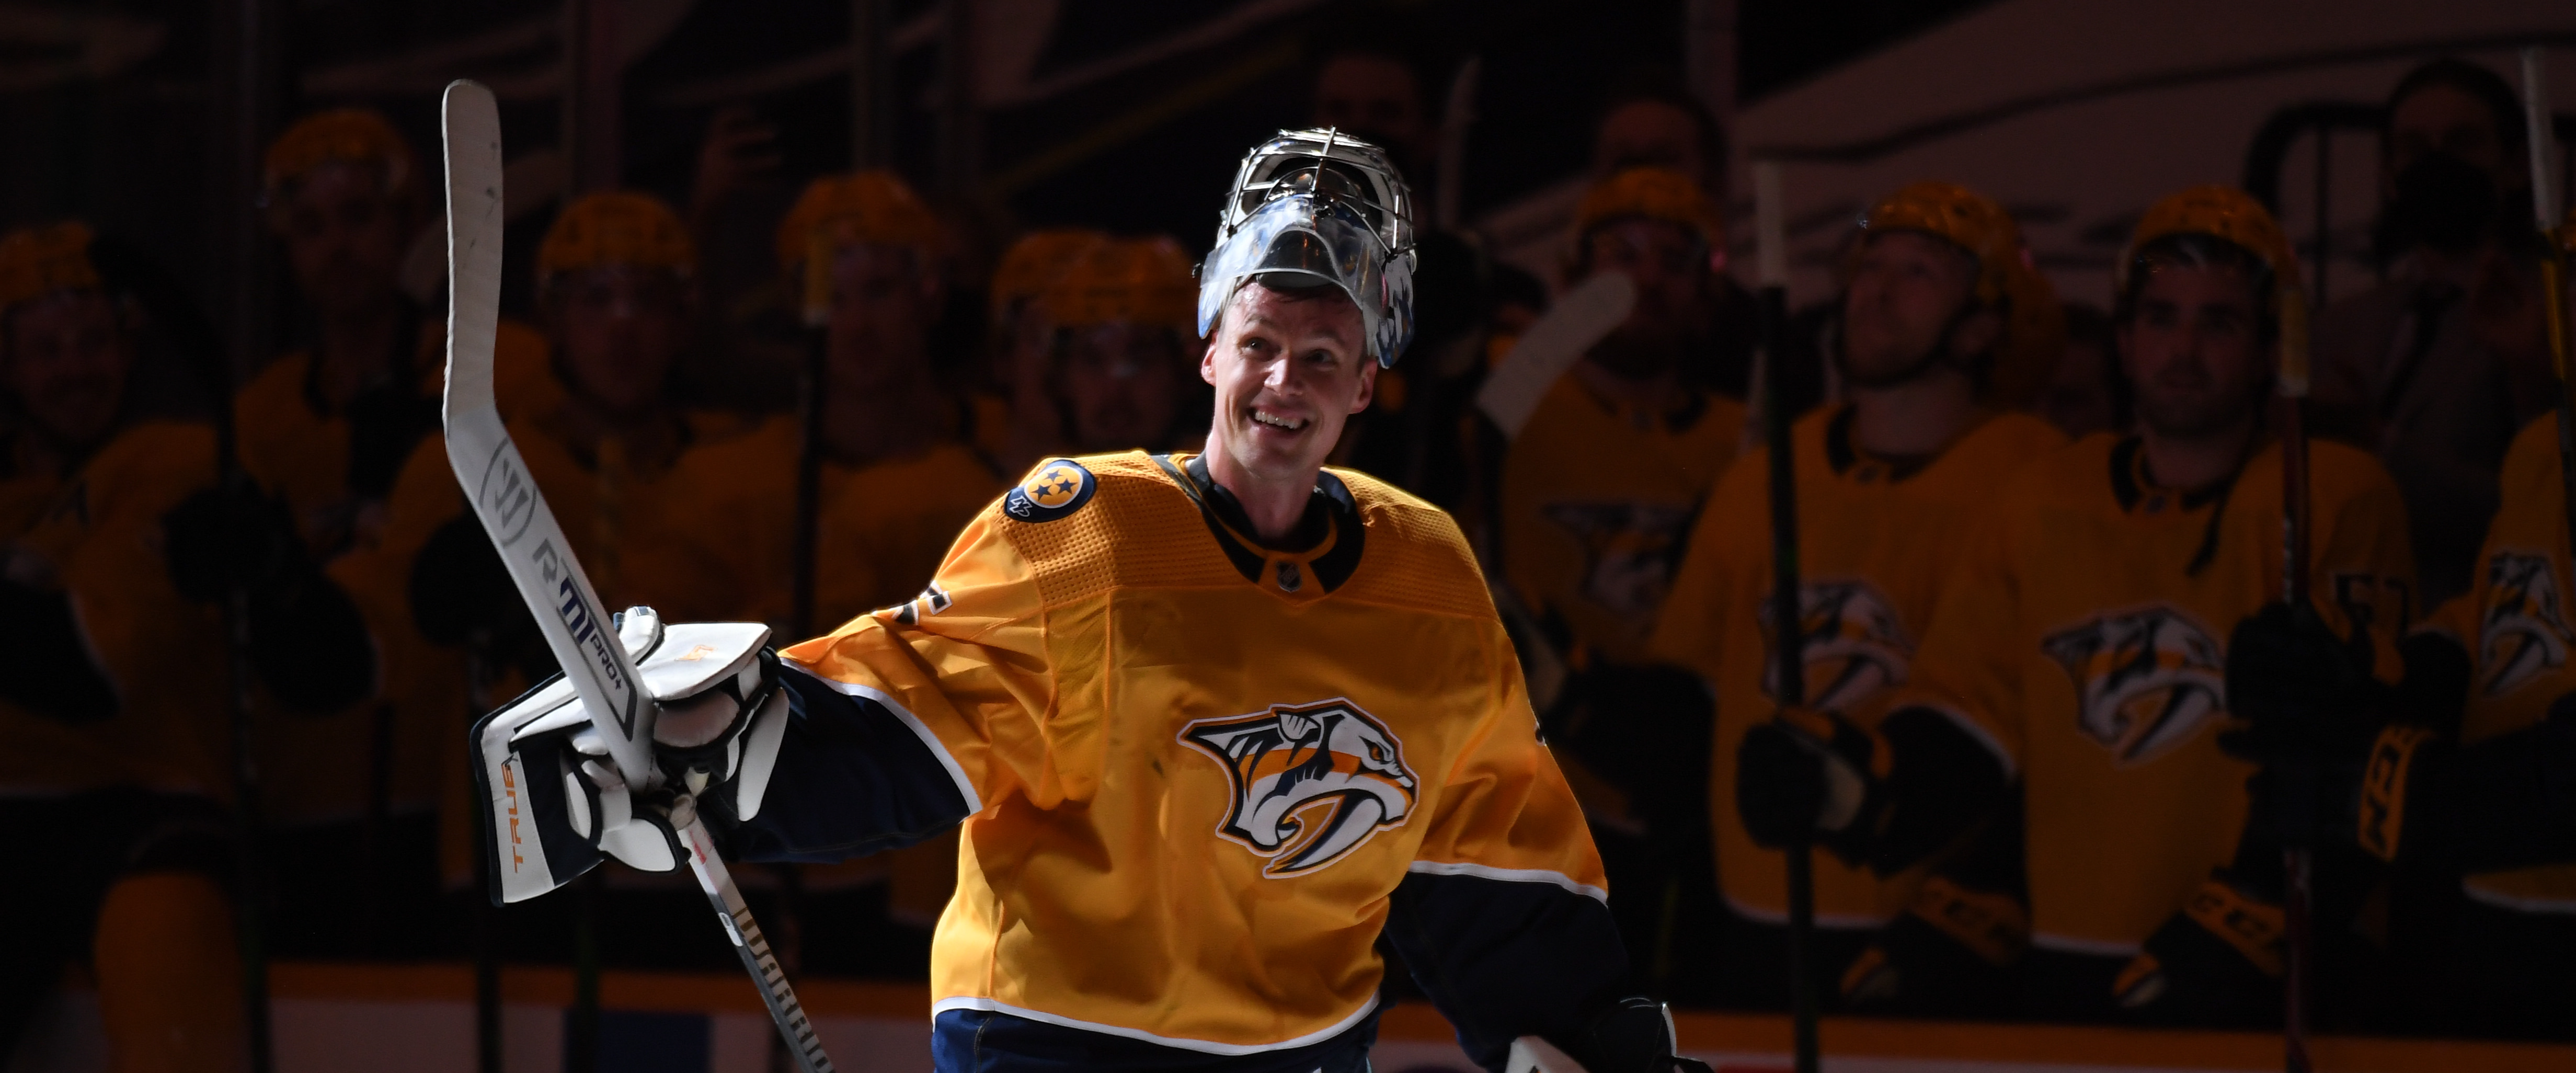 The end of an era - Pekka Rinne retires after 15 seasons in Nashville